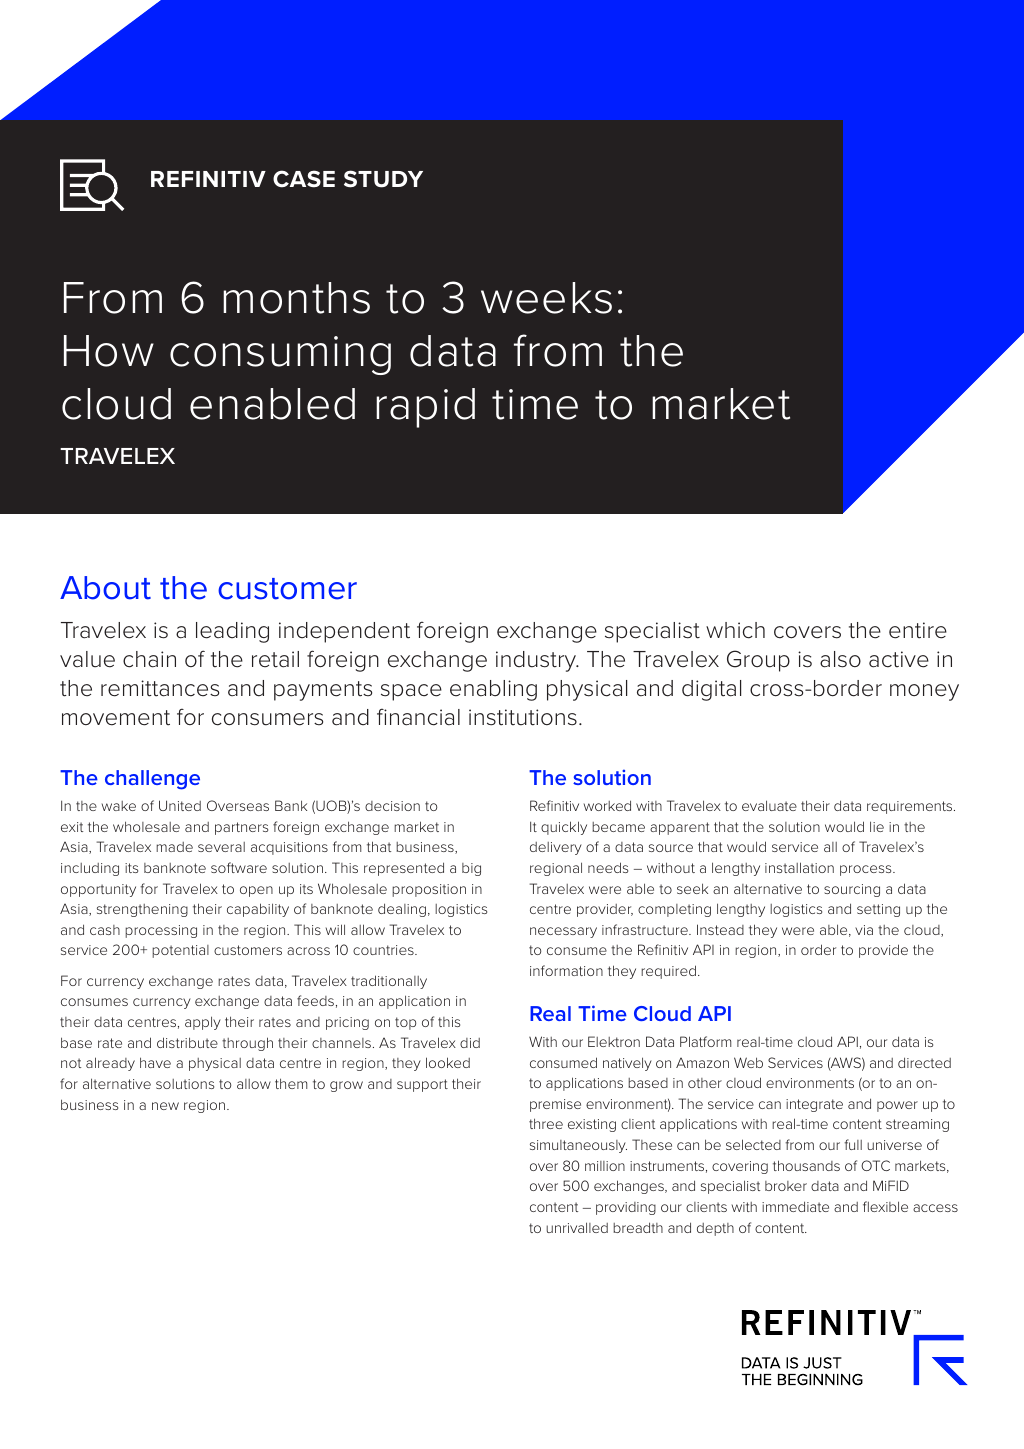 Refinitiv Case Study] From 6 months to 3 weeks: How